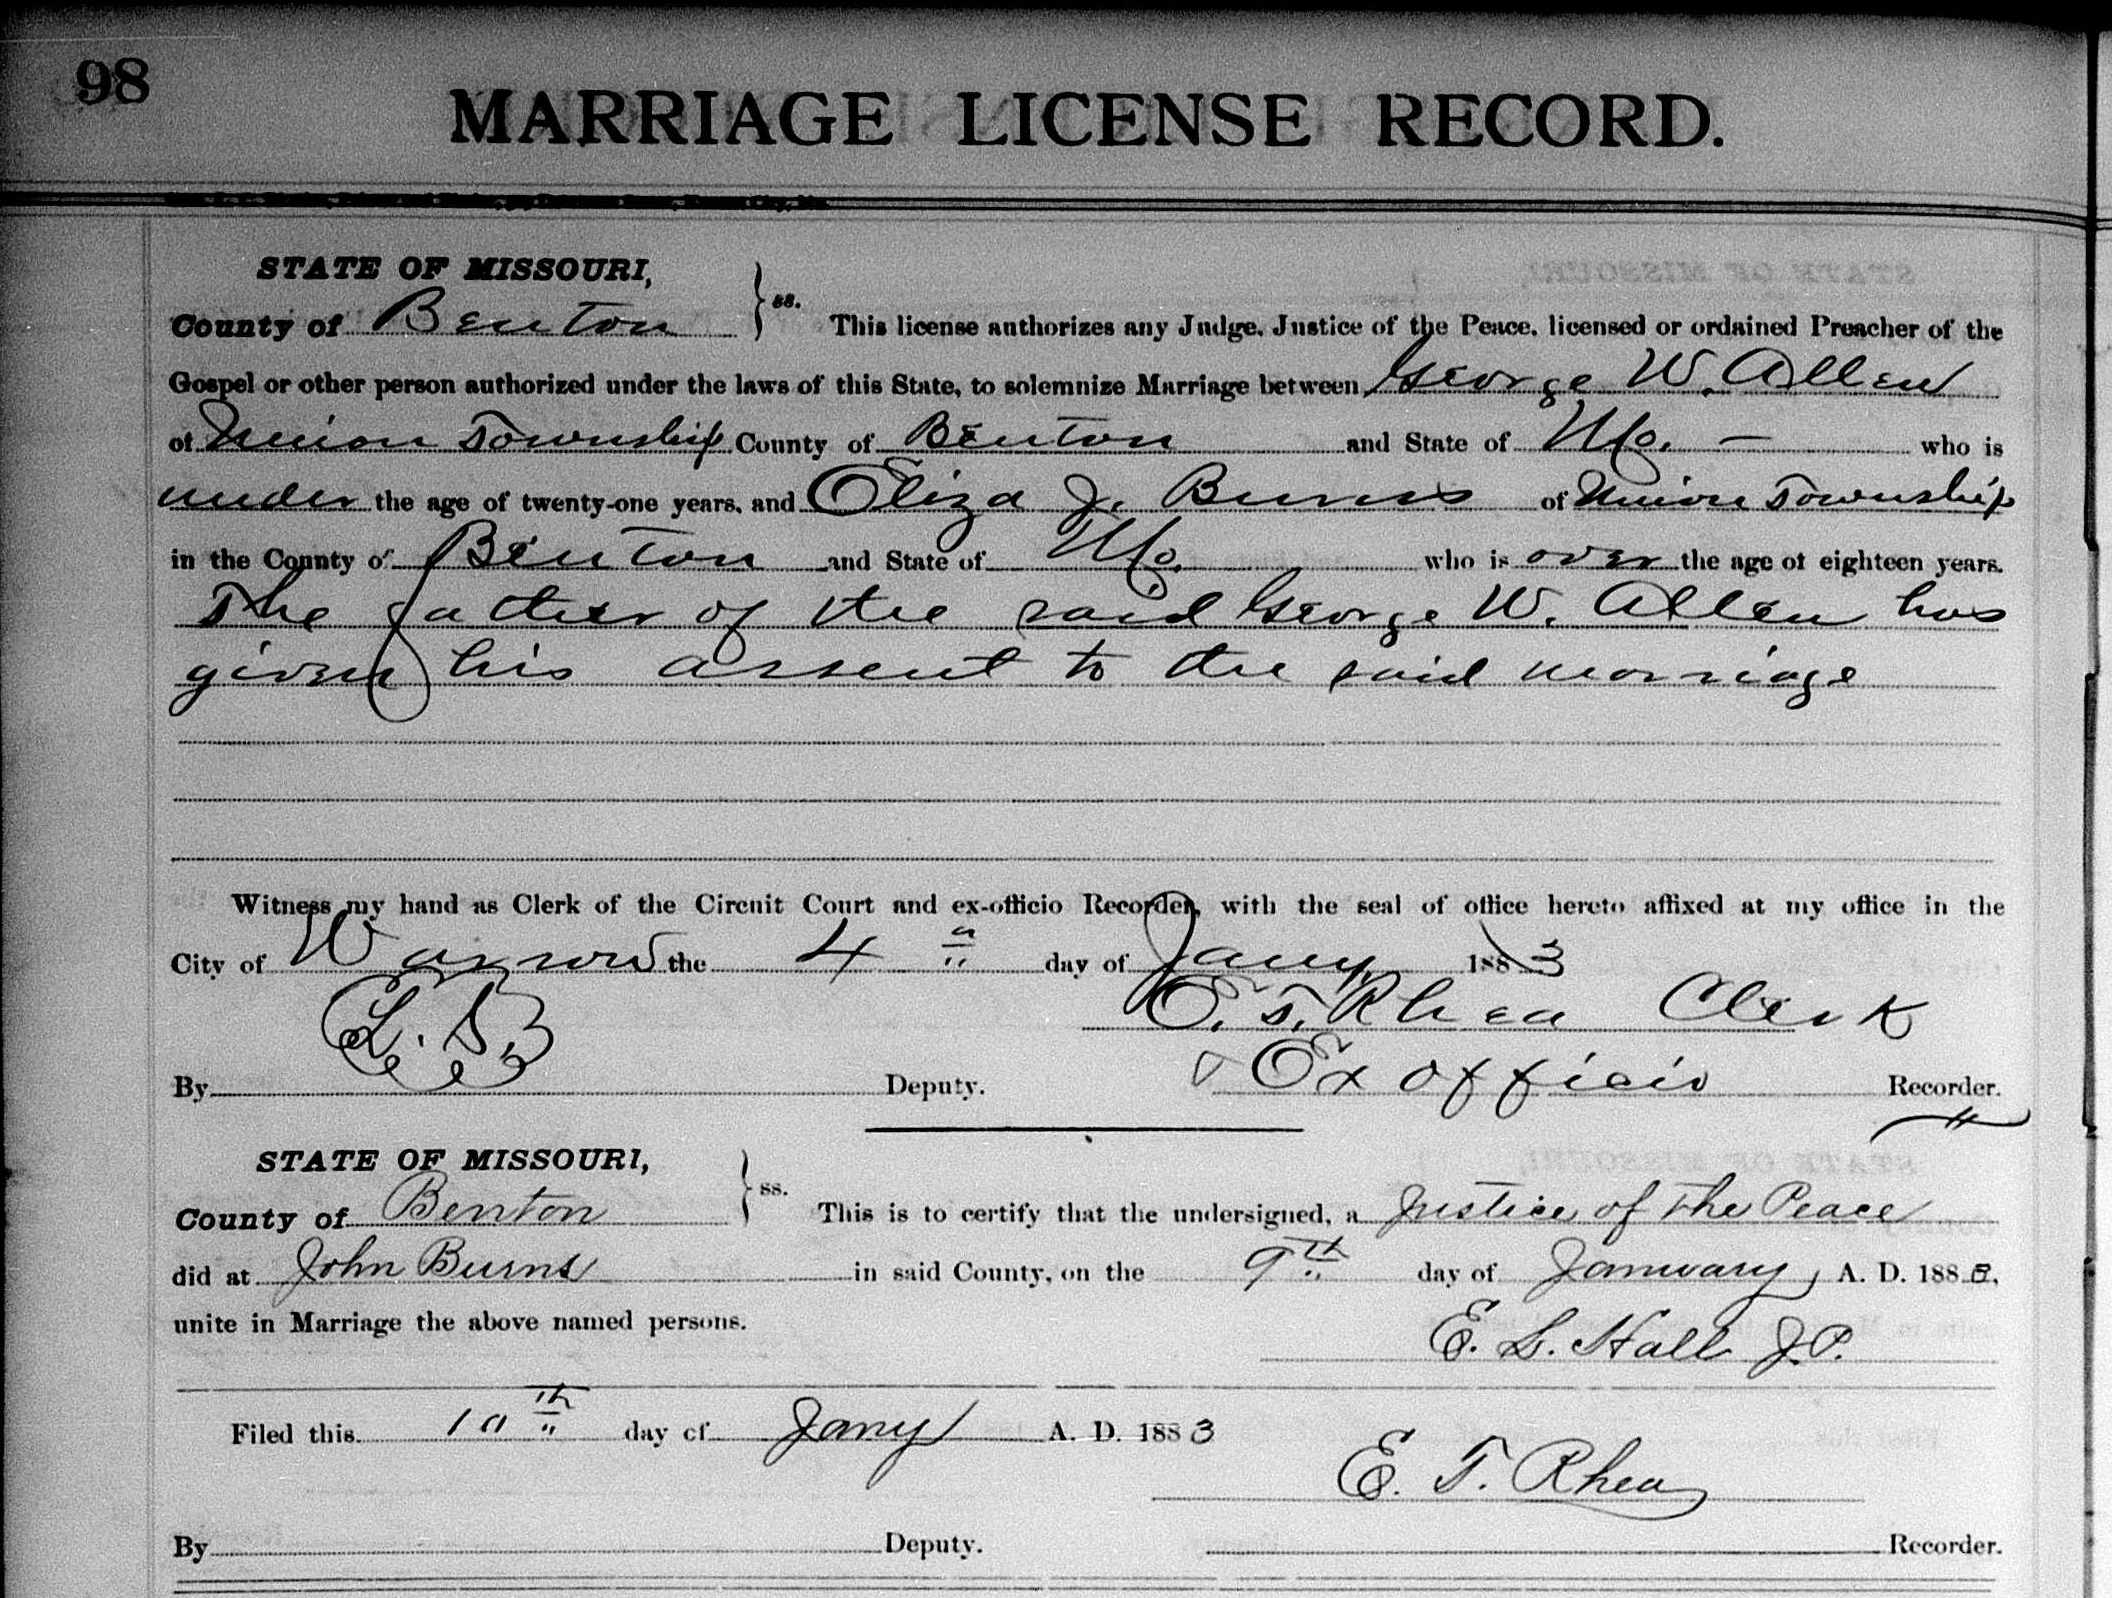 George Washington Allen and Eliza Jane Burns Marriage Record